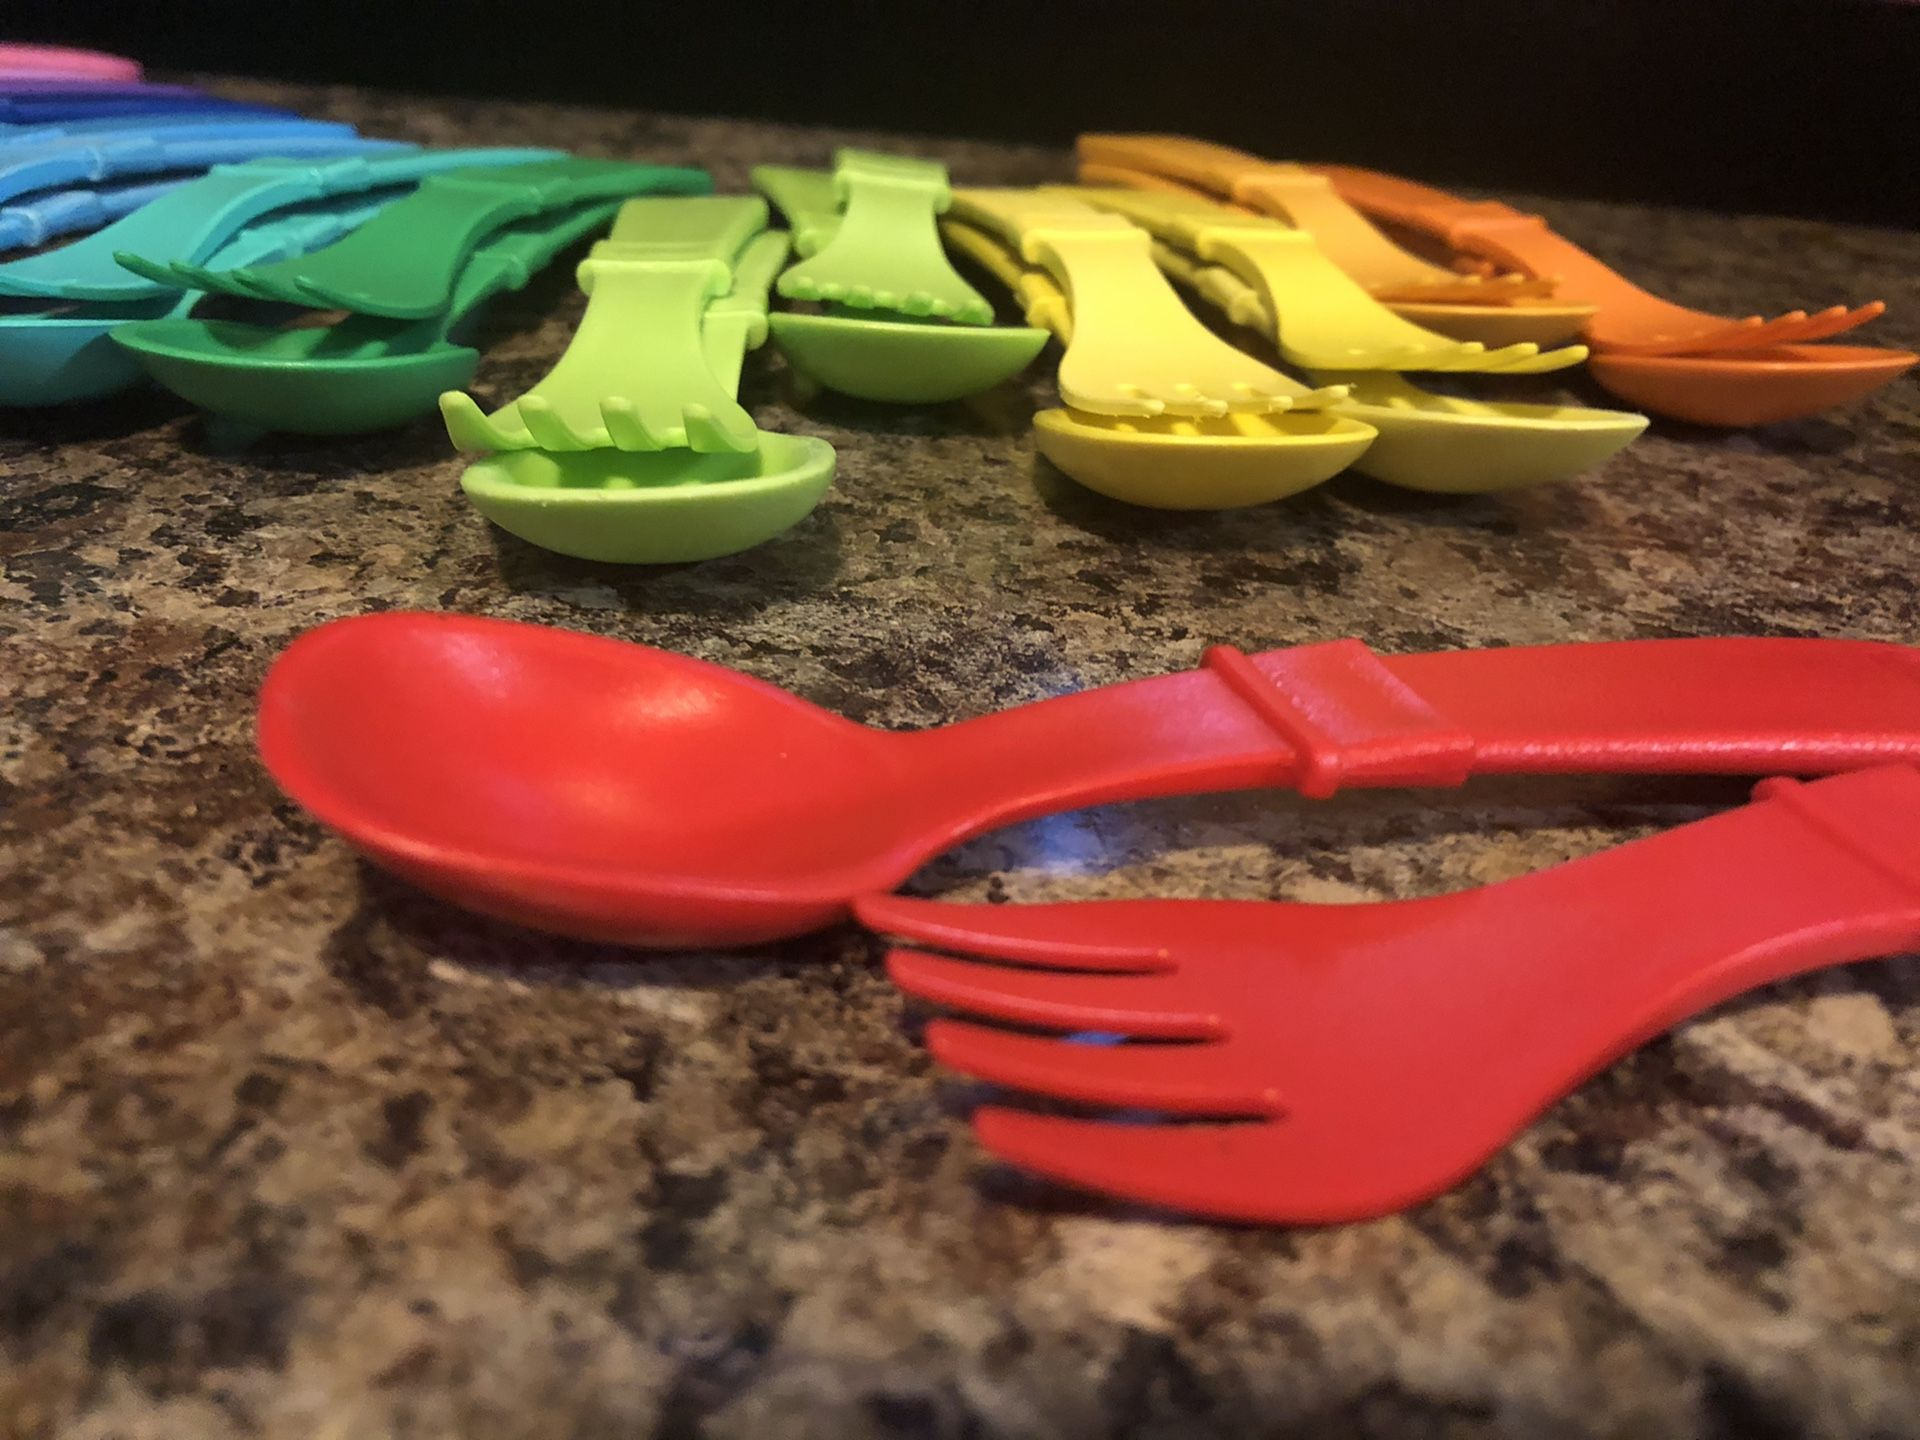 Seventeen sets of Replay brand children's fork-and-spoon ware